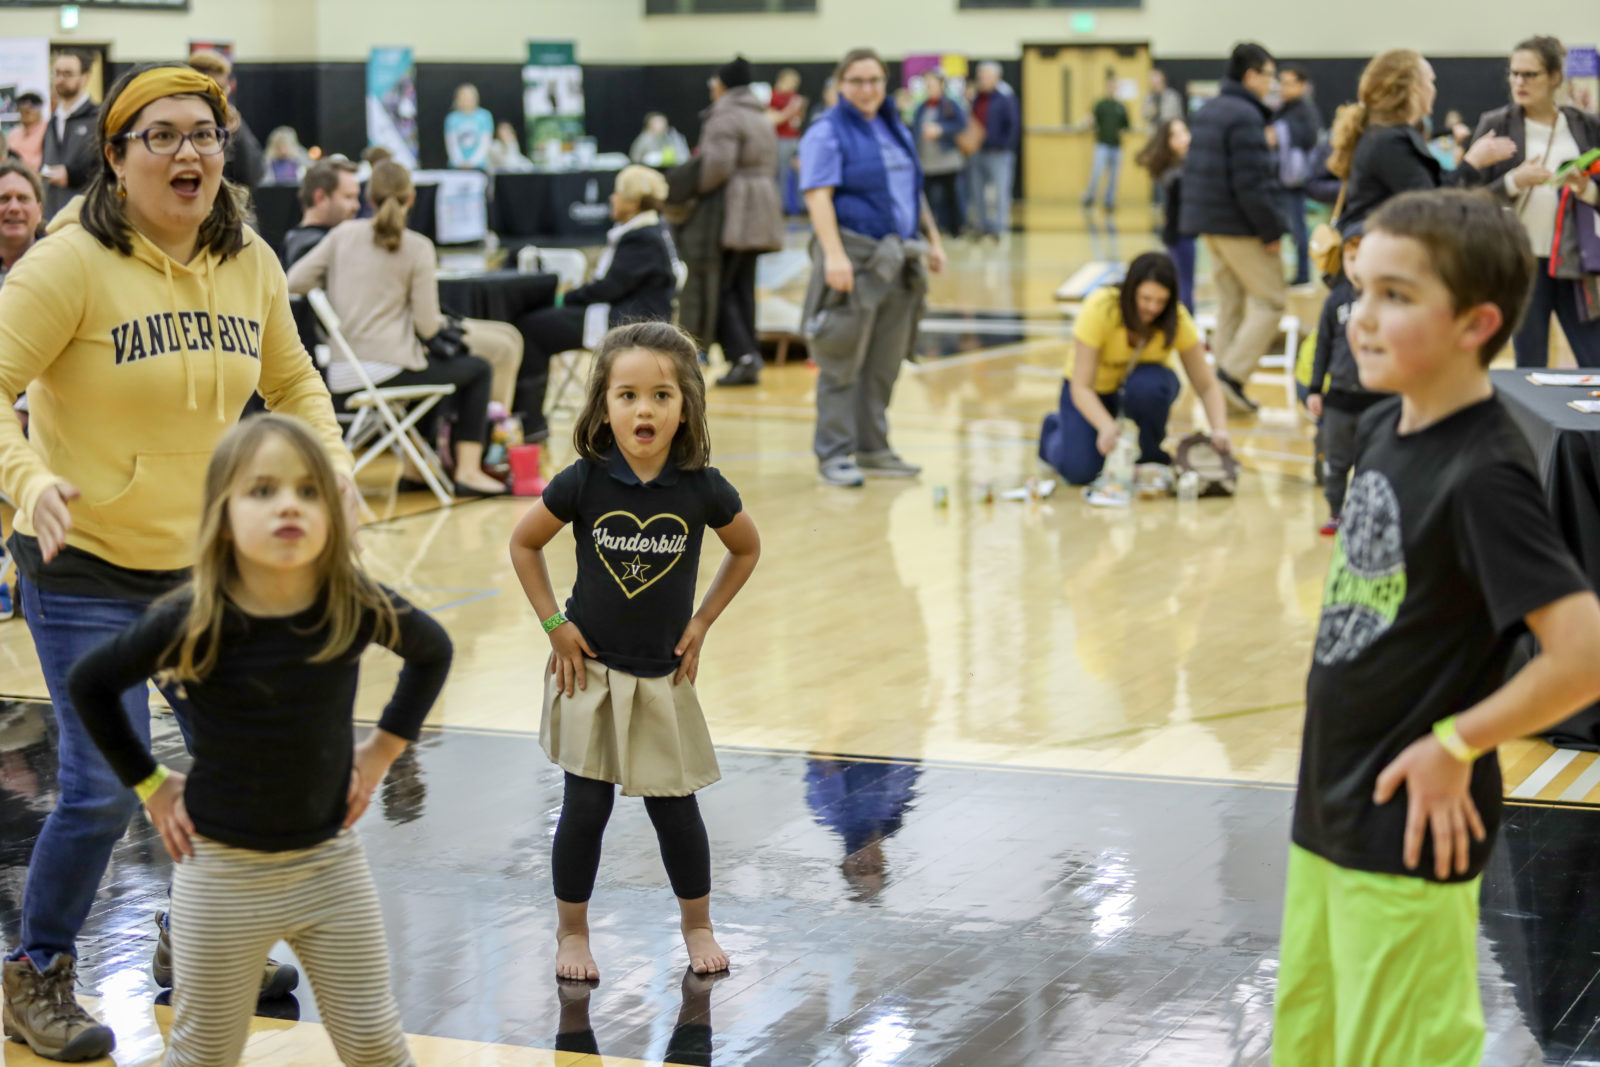 Family Fest, held in the Memorial Practice Gym, featured games, inflatables and other fun activities for Vanderbilt employees and their family members. (Vanderbilt University)